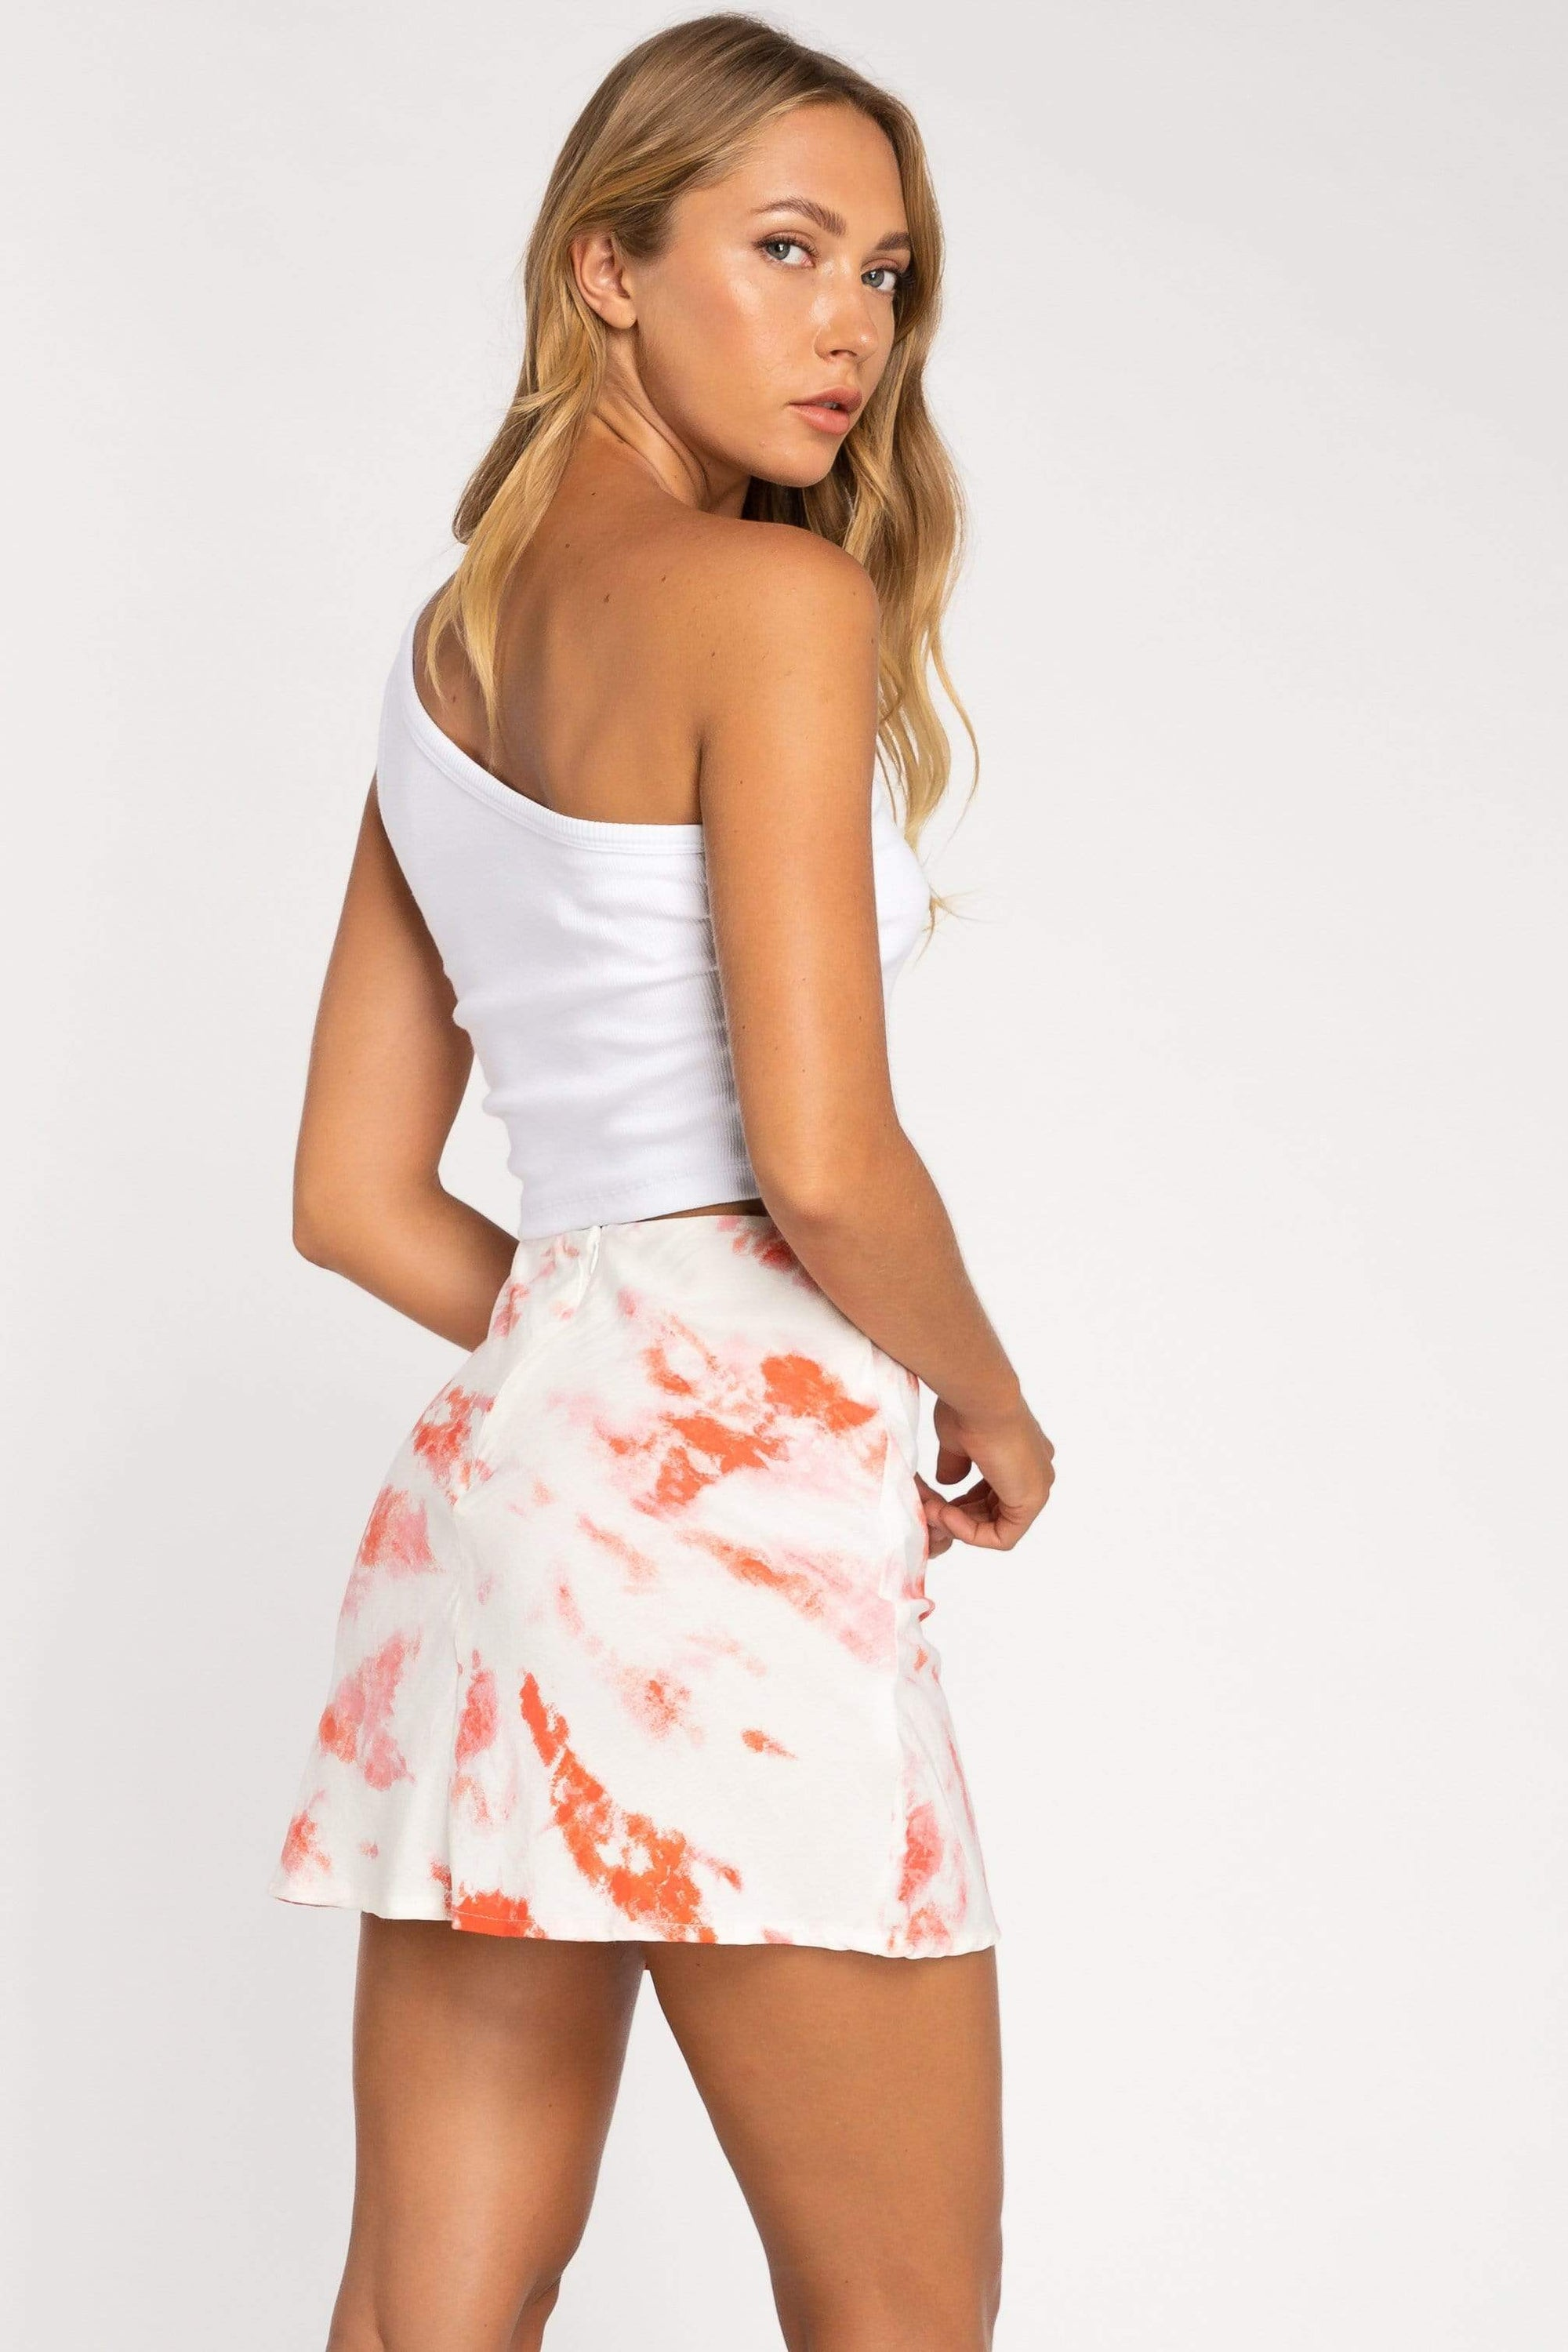 Selena Skirt - Skirt - LOST IN PARADISE